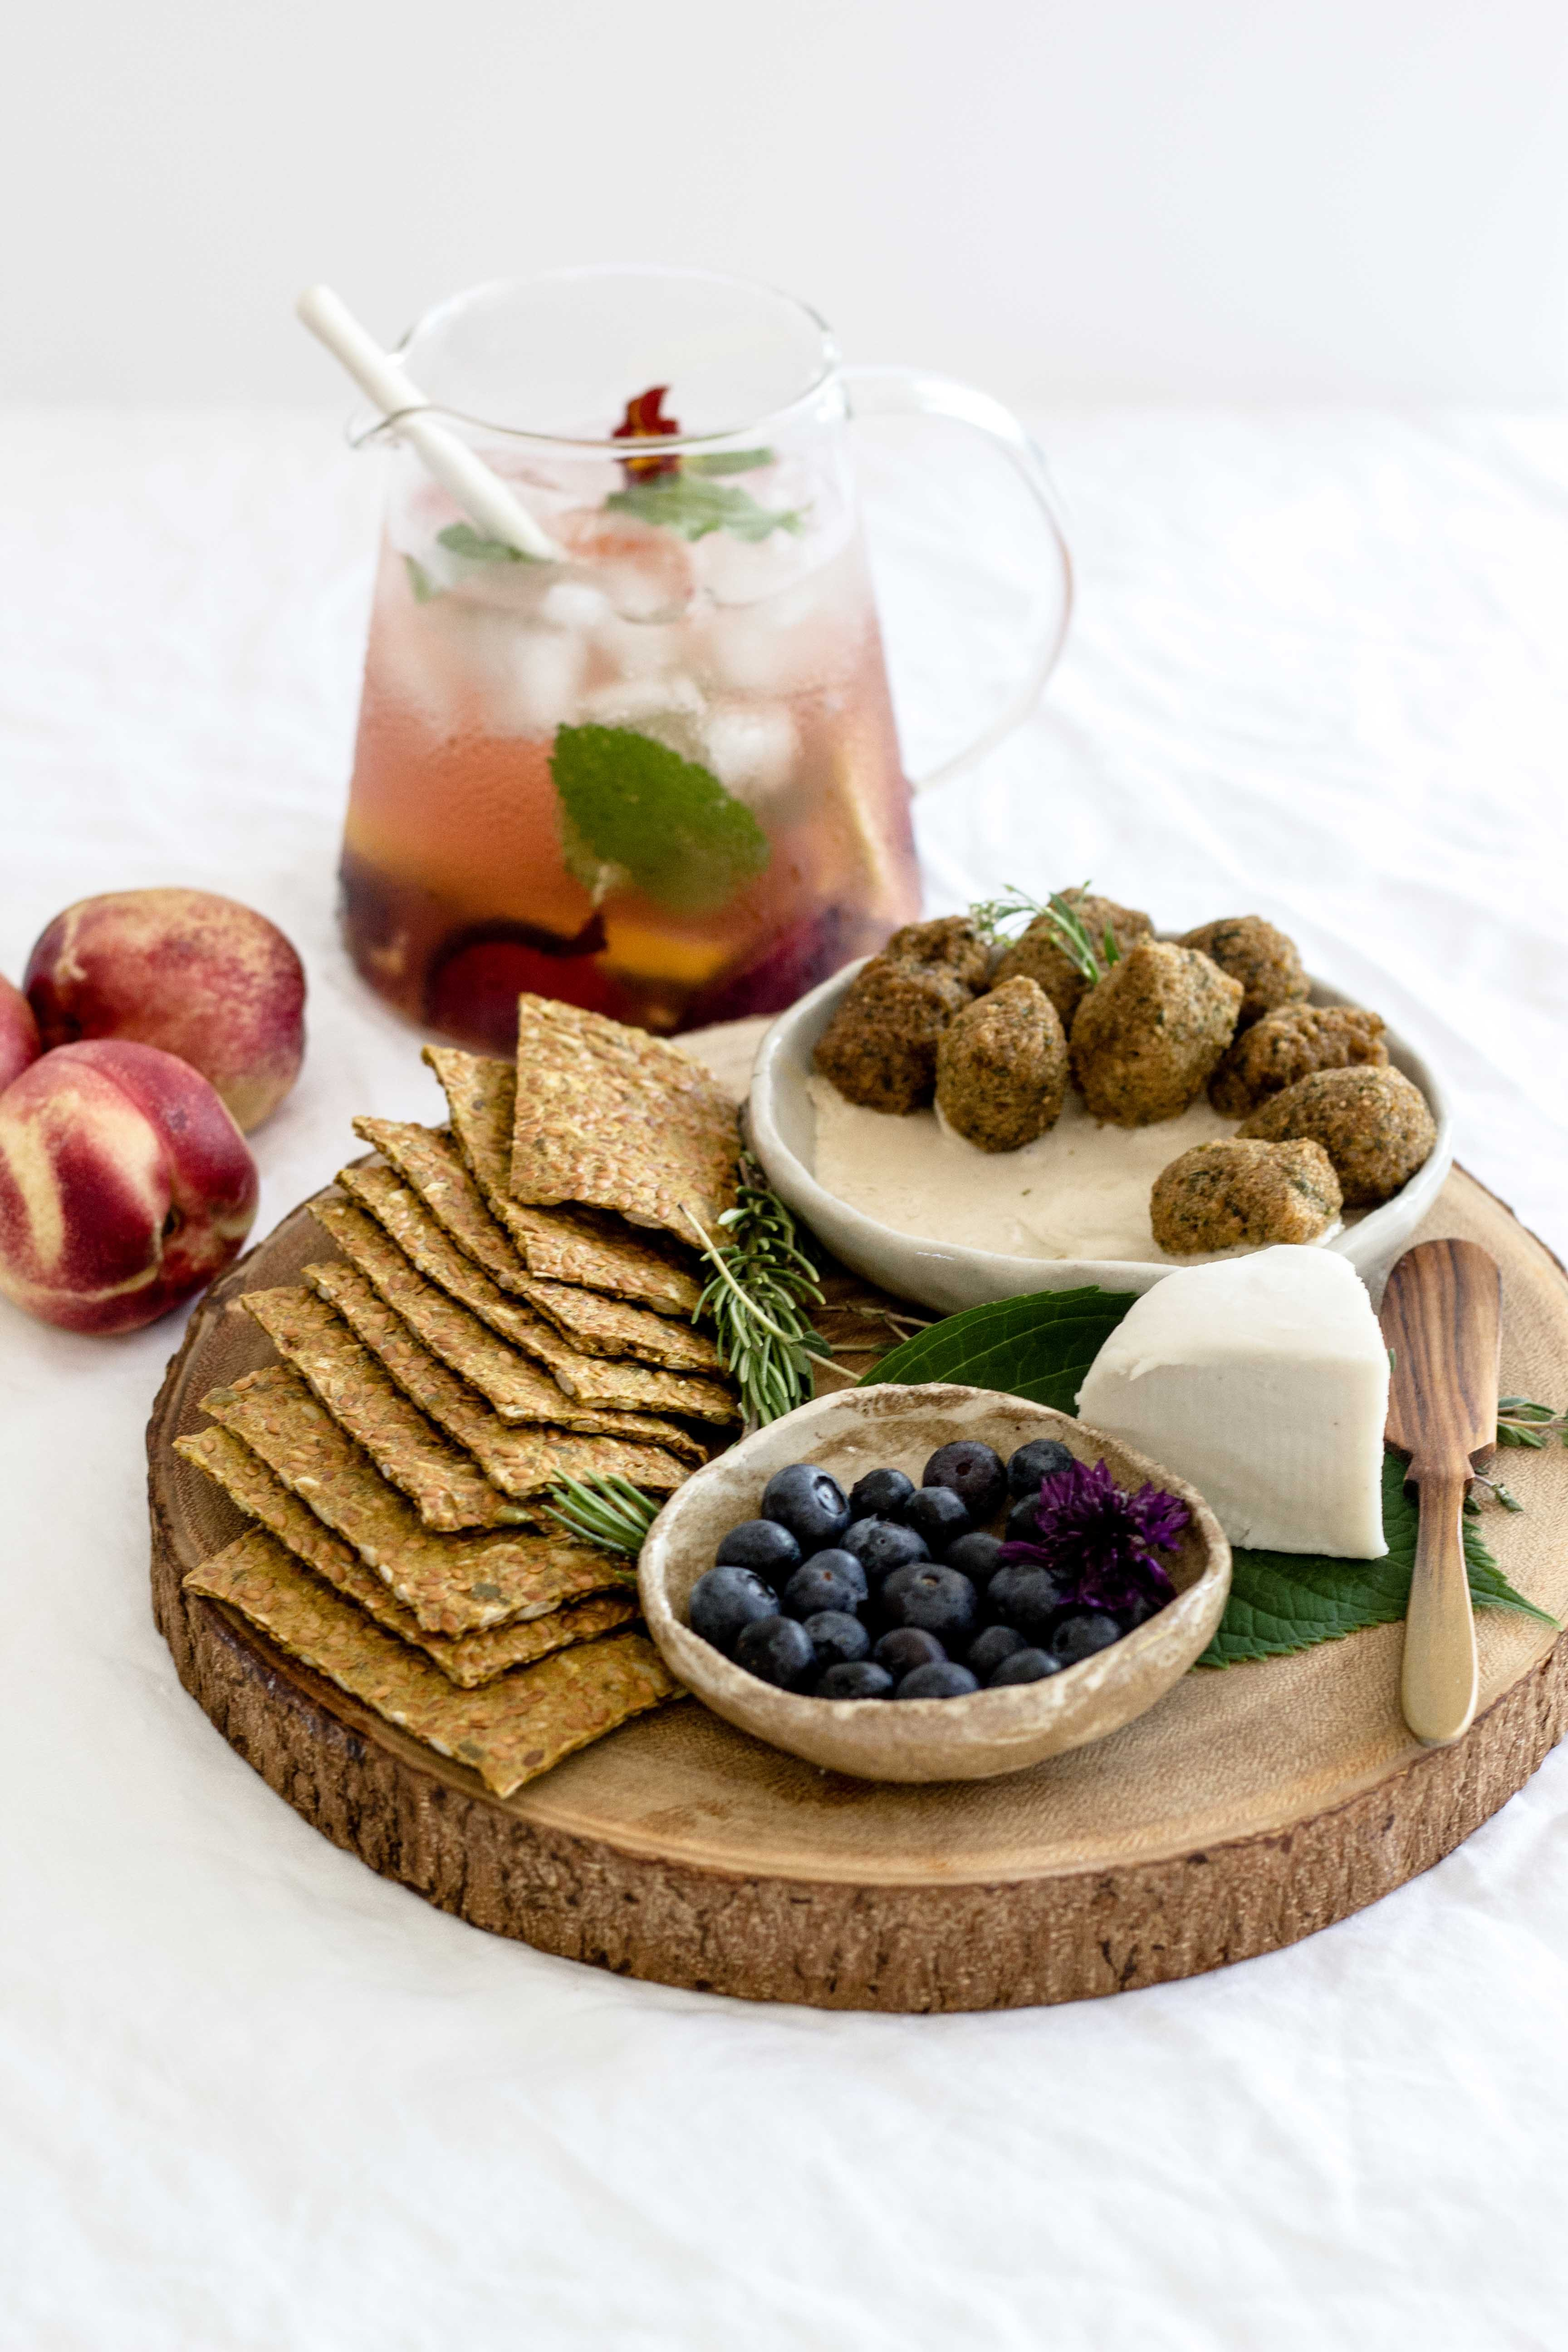 assorted-cook foods on round brown wooden tray